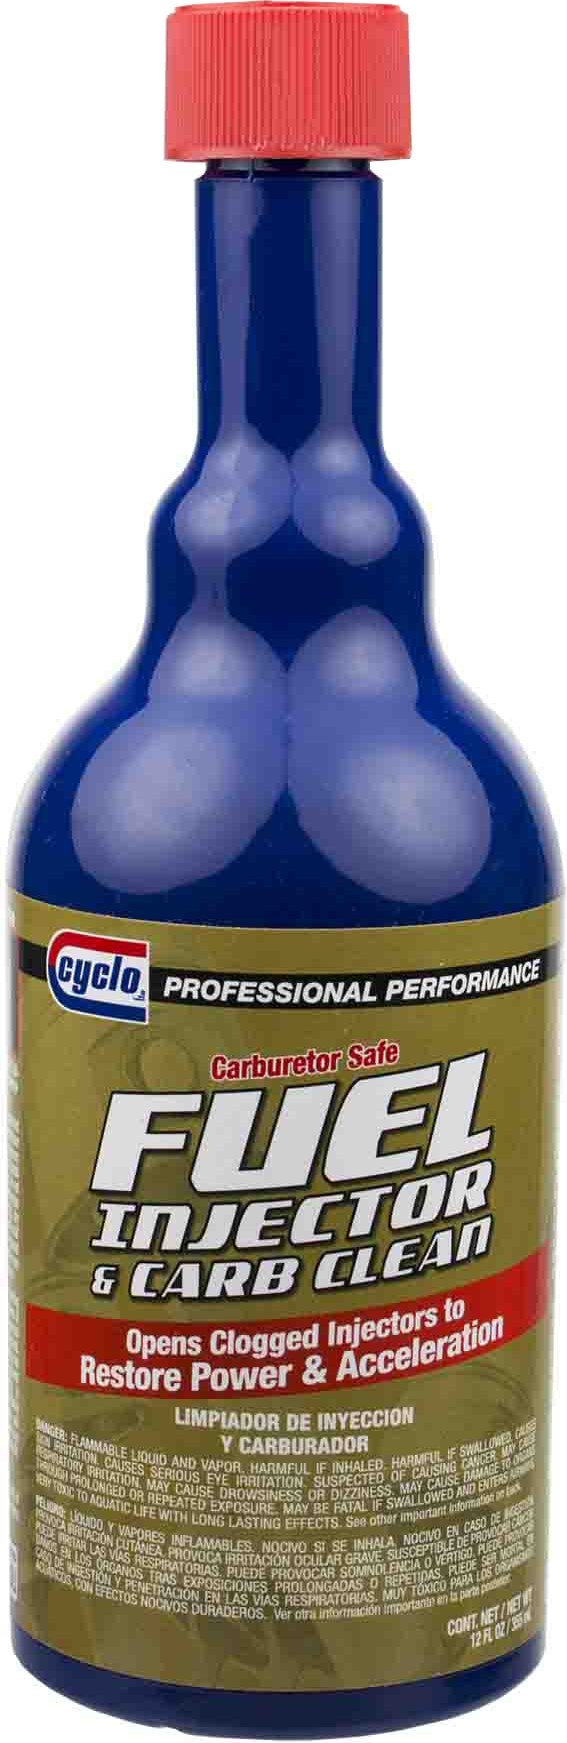 Niteo Cyclo C41 Fuel Injector & Carb Cleaner, 12 fl oz, Case of 12